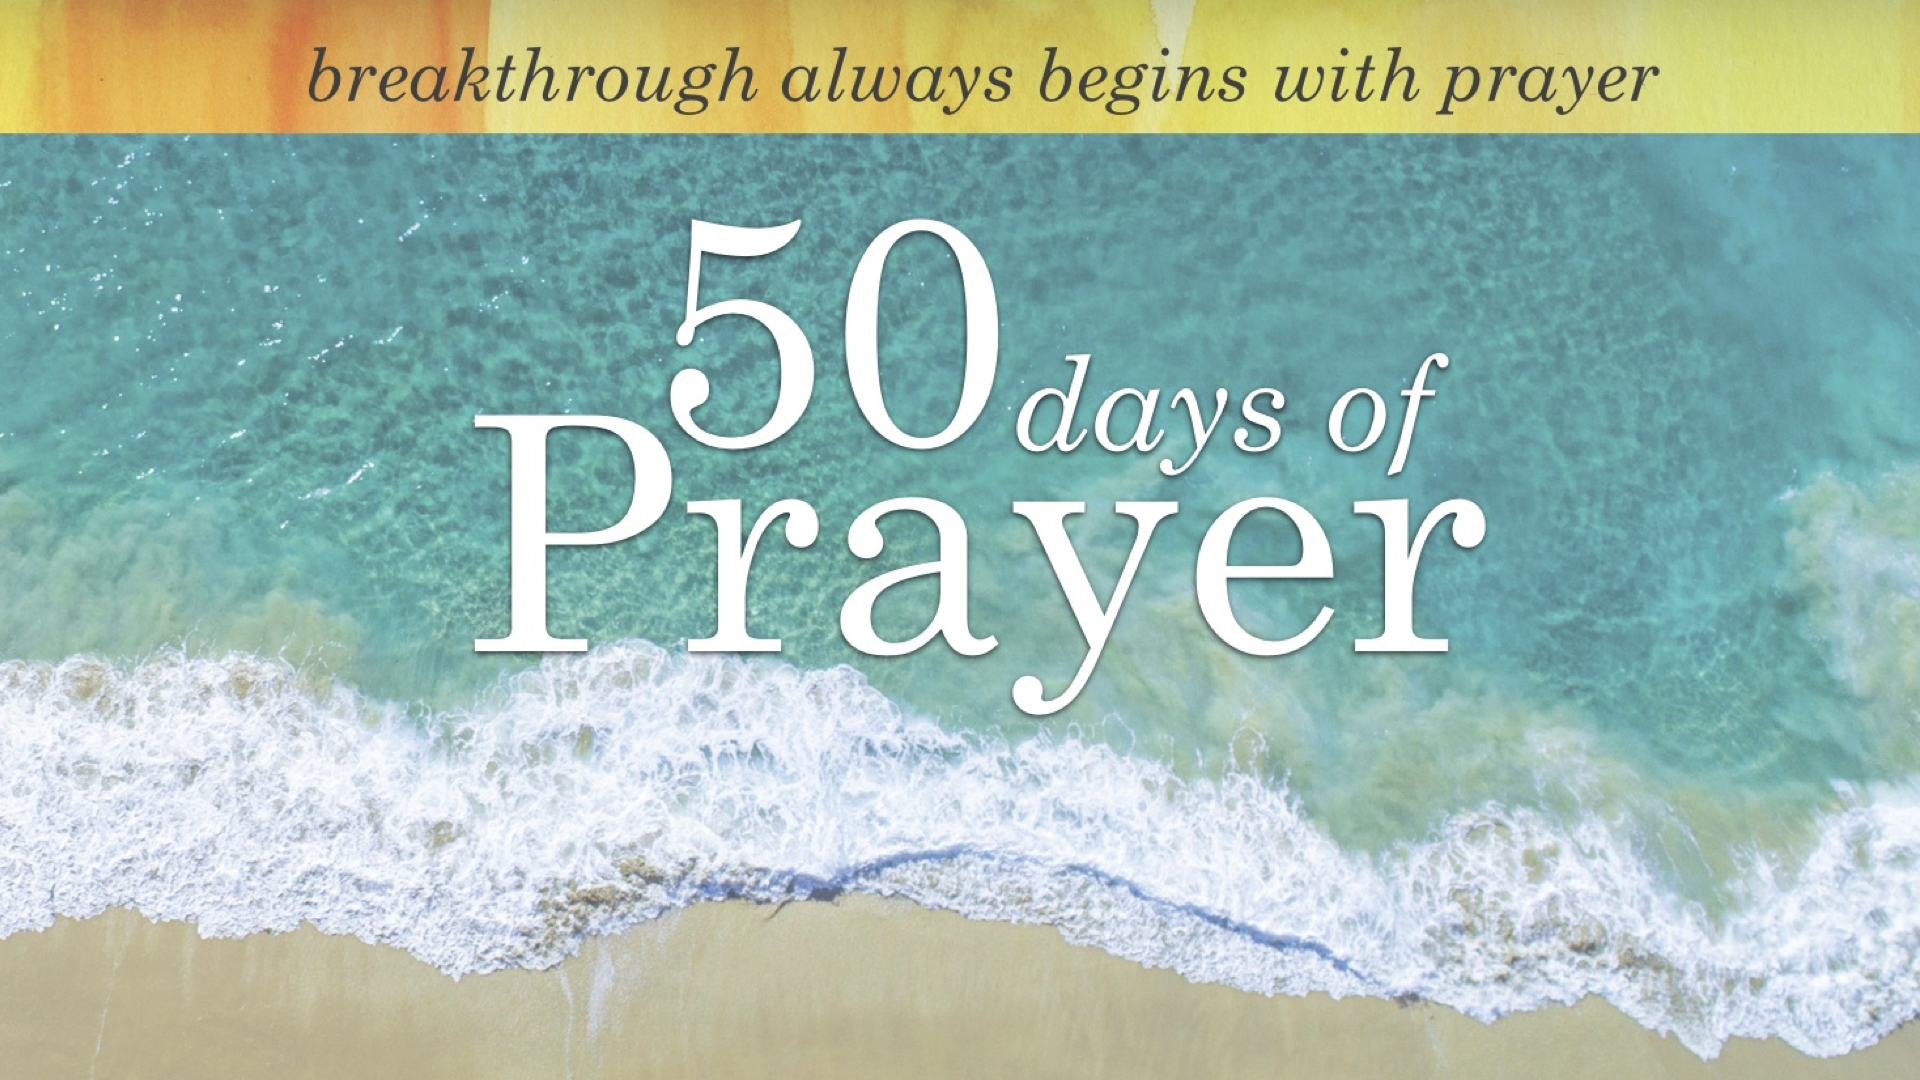 50 days of prayer 3: WHO DO YOU THINK YOU ARE TALKING TO? - PHIL CHORLIAN | 10.21.2018 | WATCH